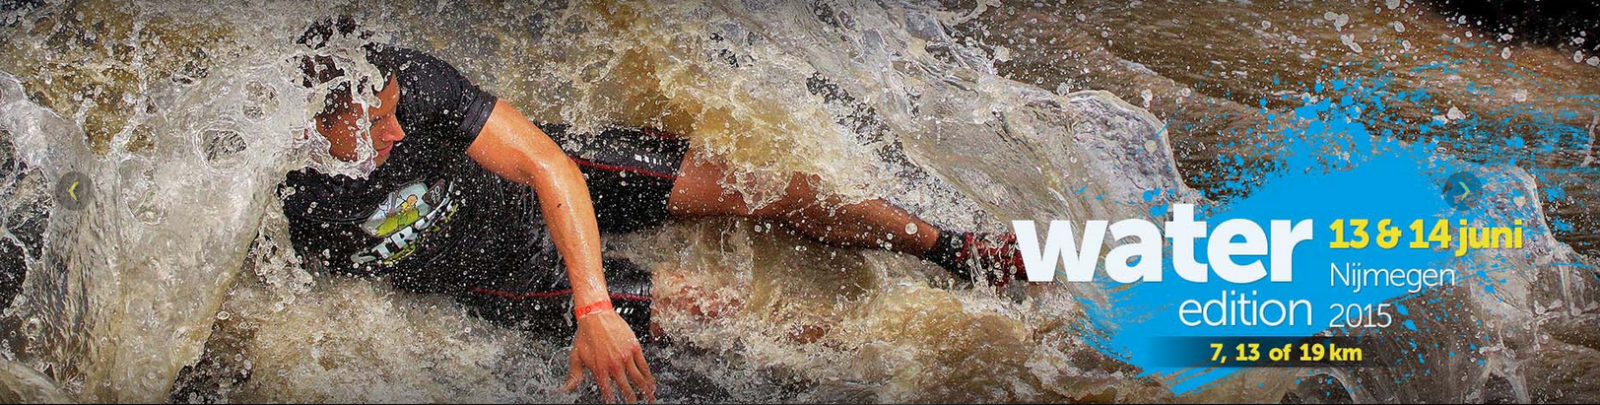 Strong viking run, water edition, foodness, sport